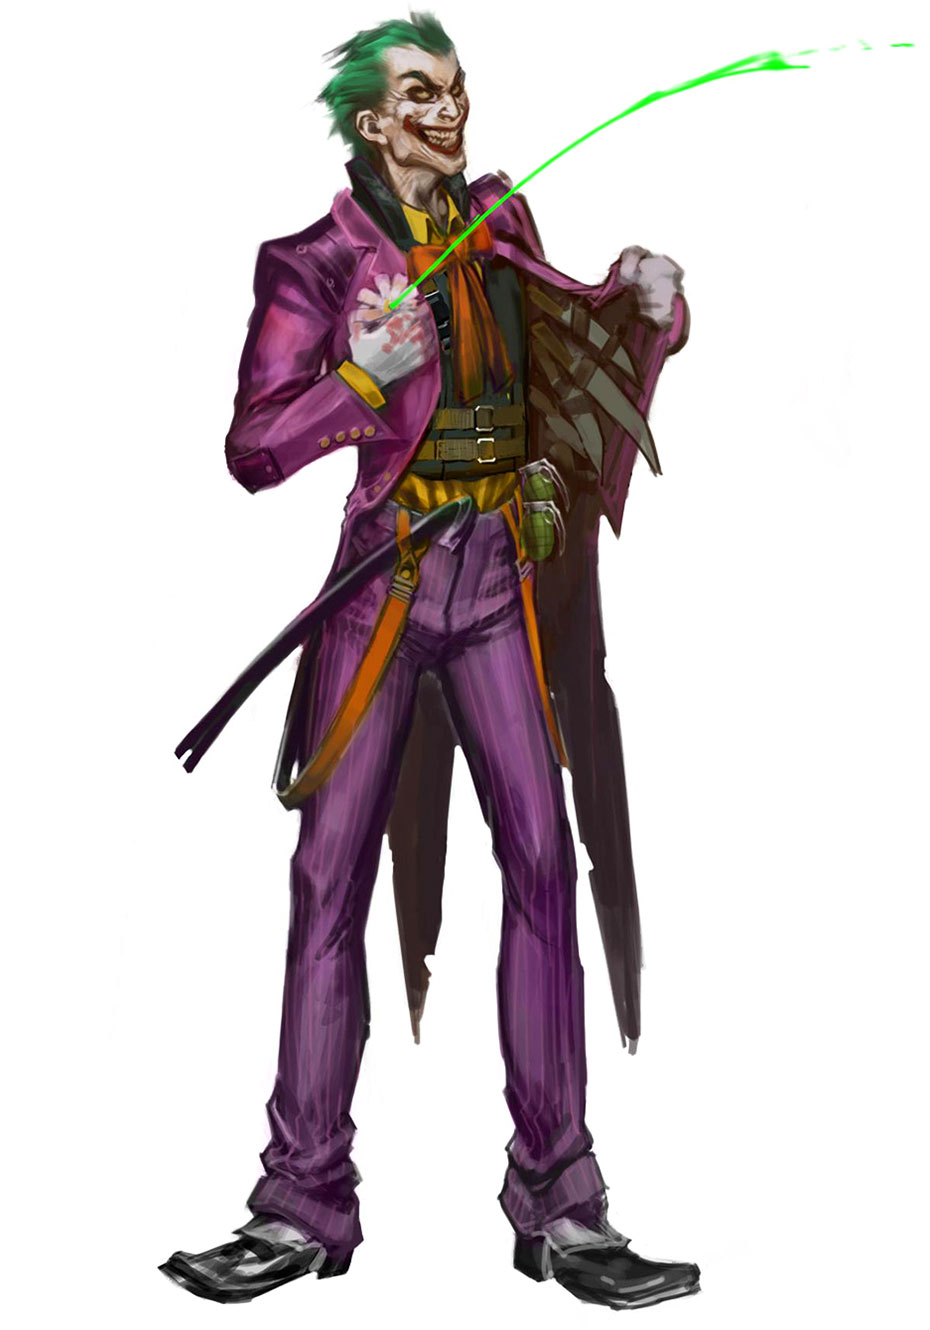 Concept Art Injustice Concept Art of The Joker